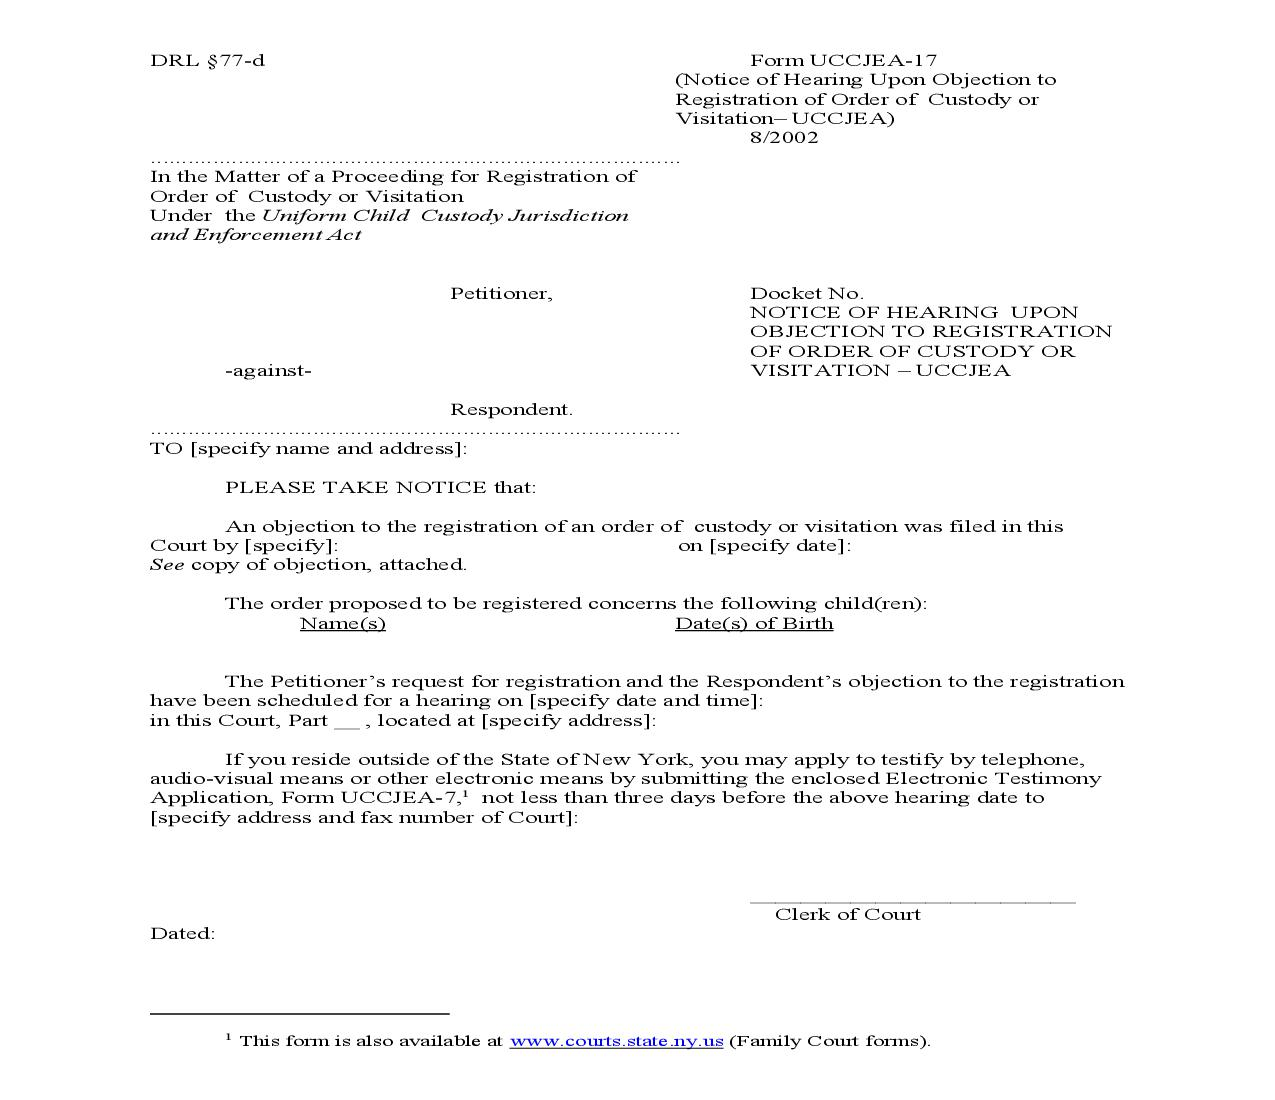 Notice Of Hearing Upon Objection To Registration Of Order Of Custody Or Visitation {UCCJEA-17}   Pdf Fpdf Doc Docx   New York